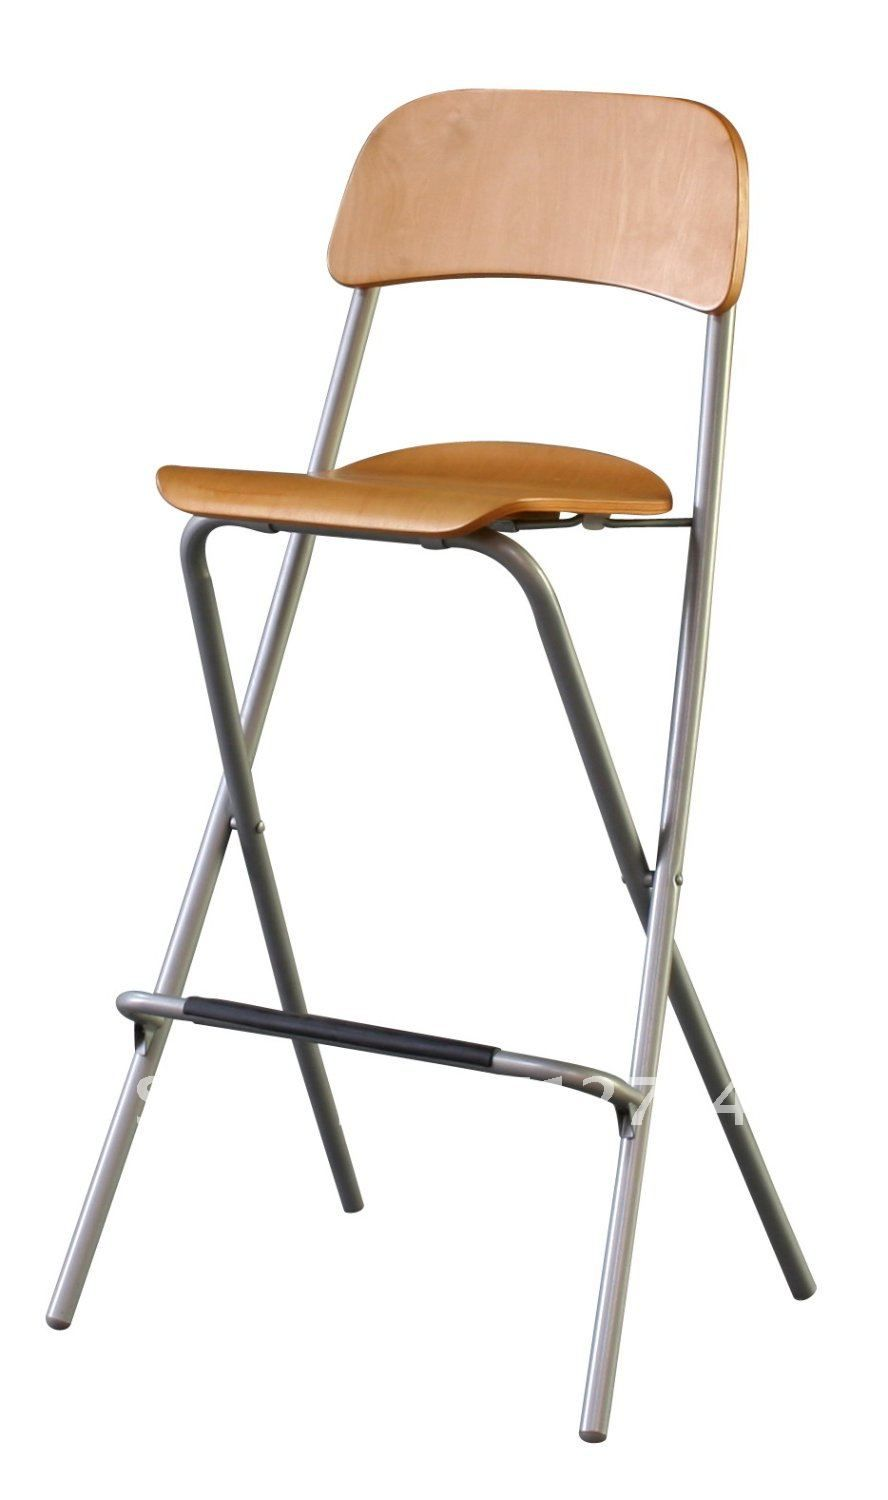 70 Folding Bar Height Stools Vintage Modern Furniture Check More At Http